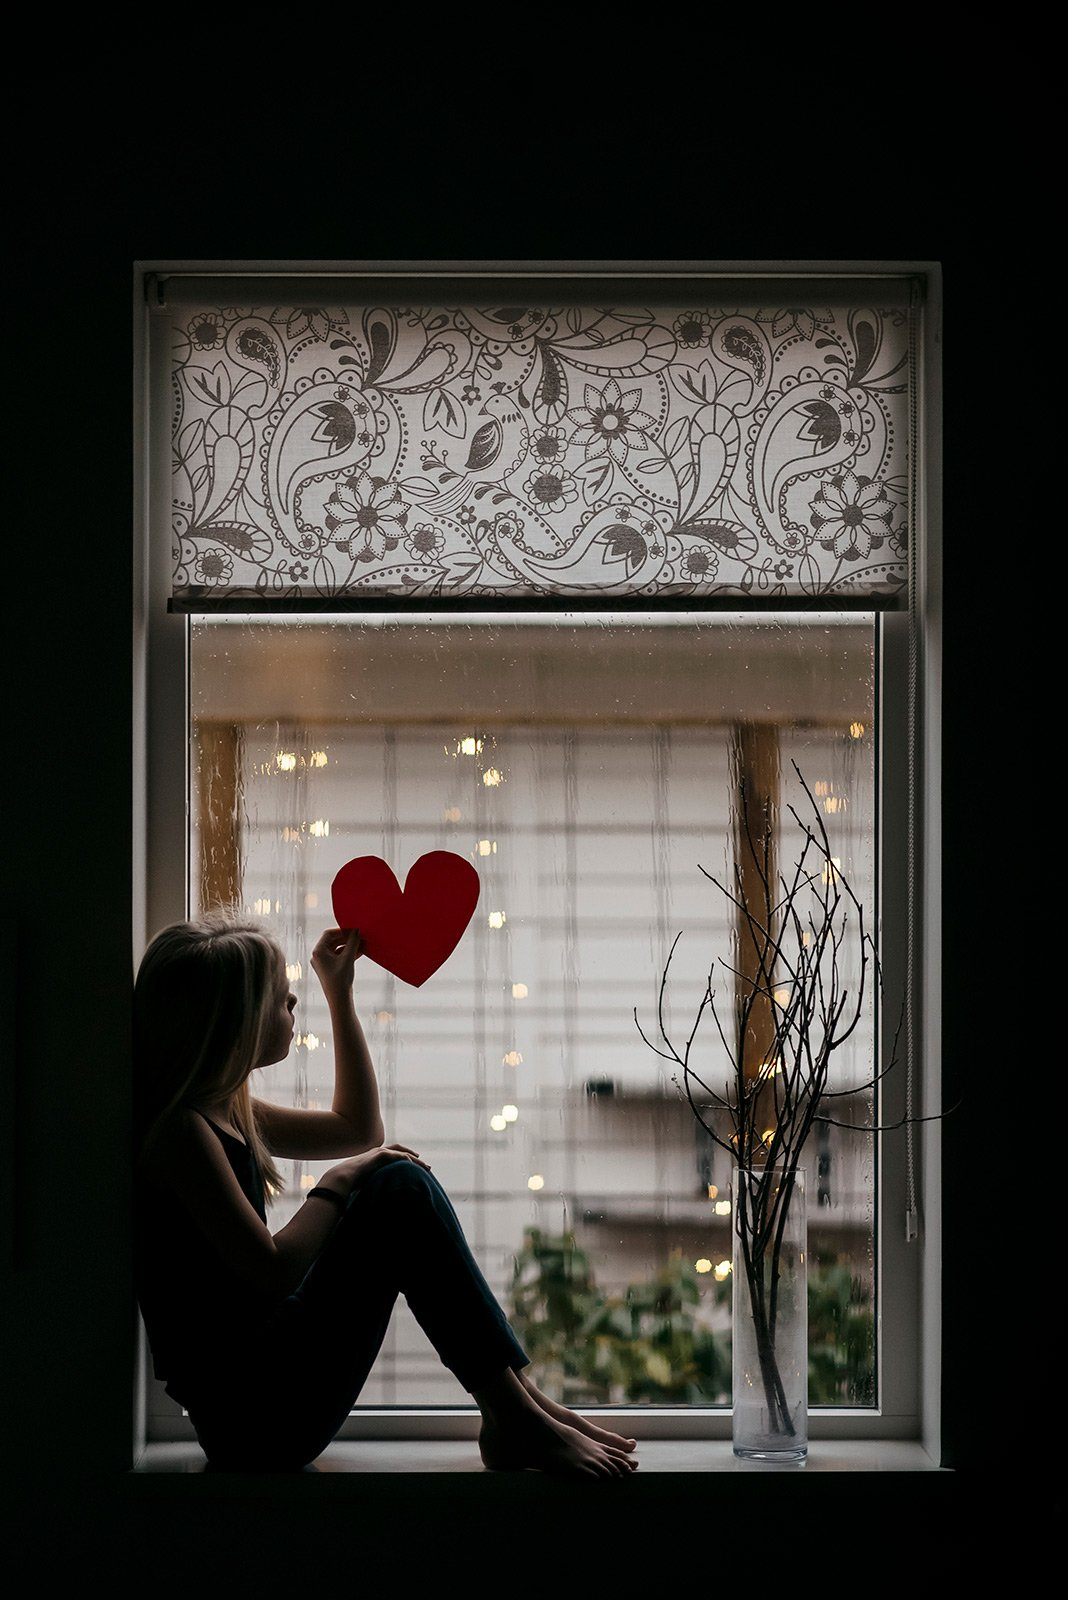 Jenny Rosenbring-girl-in-window-with-heart_jennyrosenbring